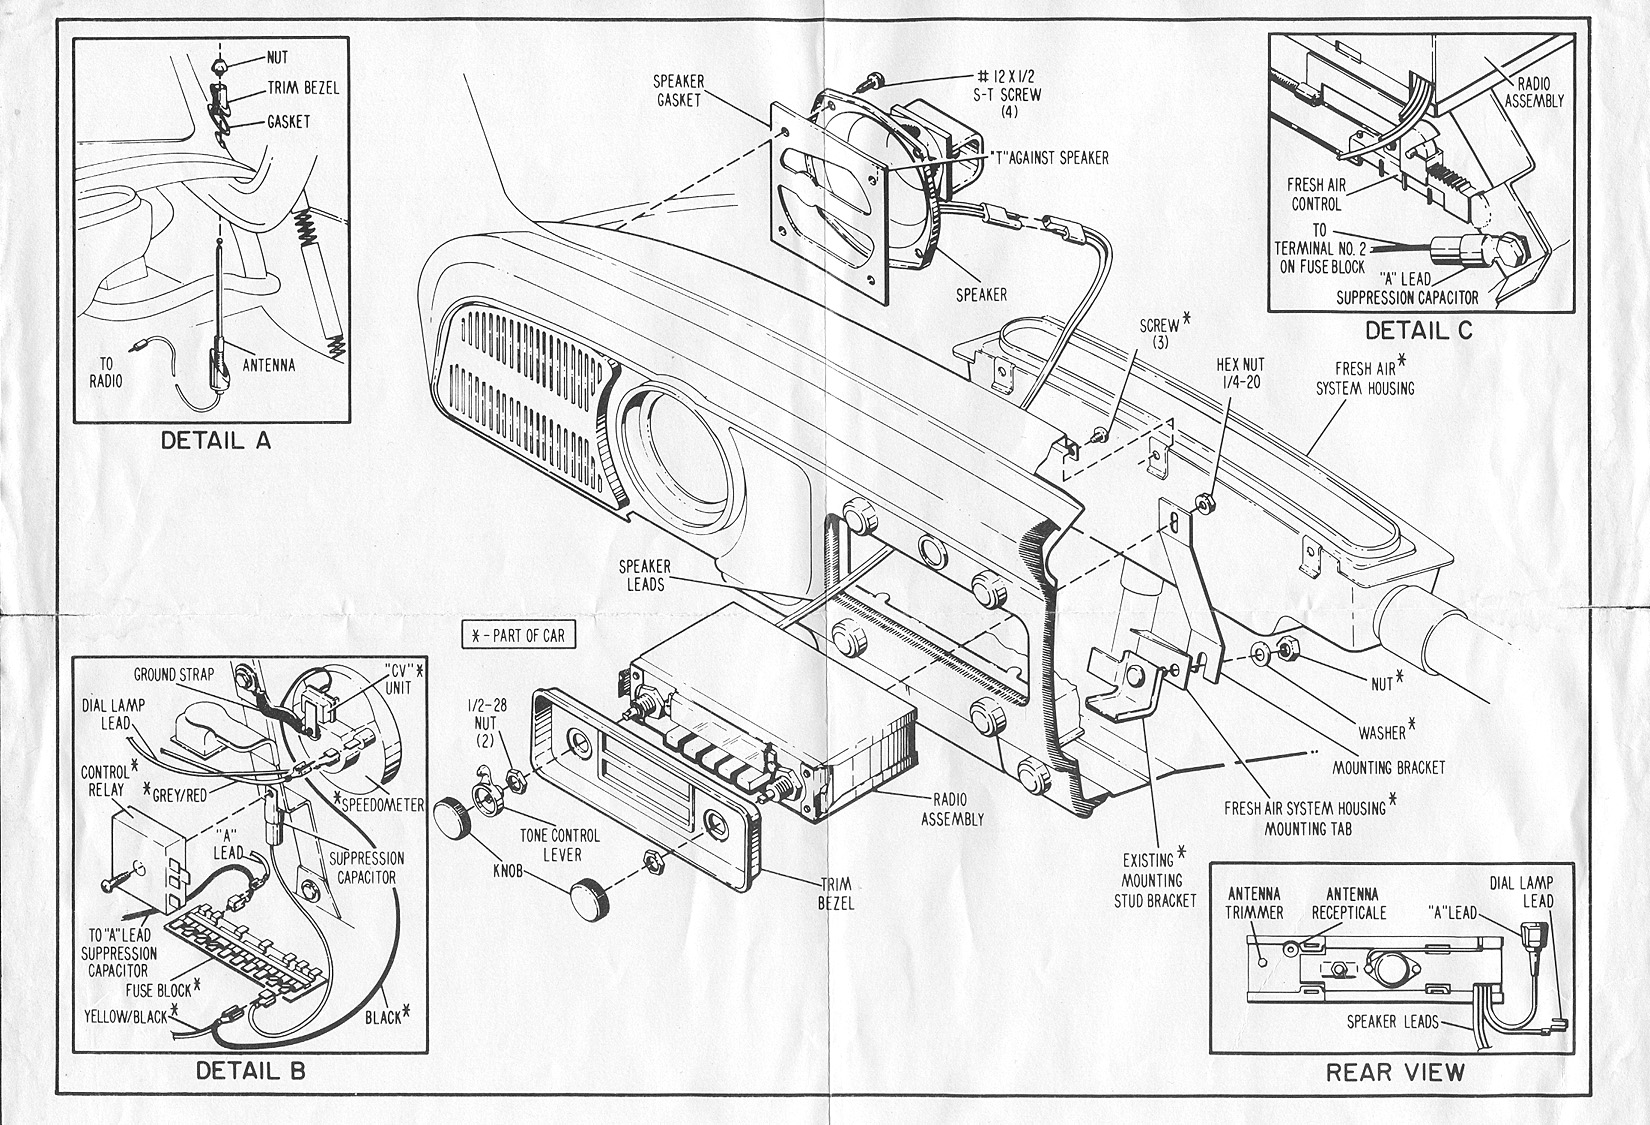 Toyota Fuse Box Diagram Archives Auto Electrical Wiring Service Manual 1994 Volkswagen Jetta Engine Timing Chain